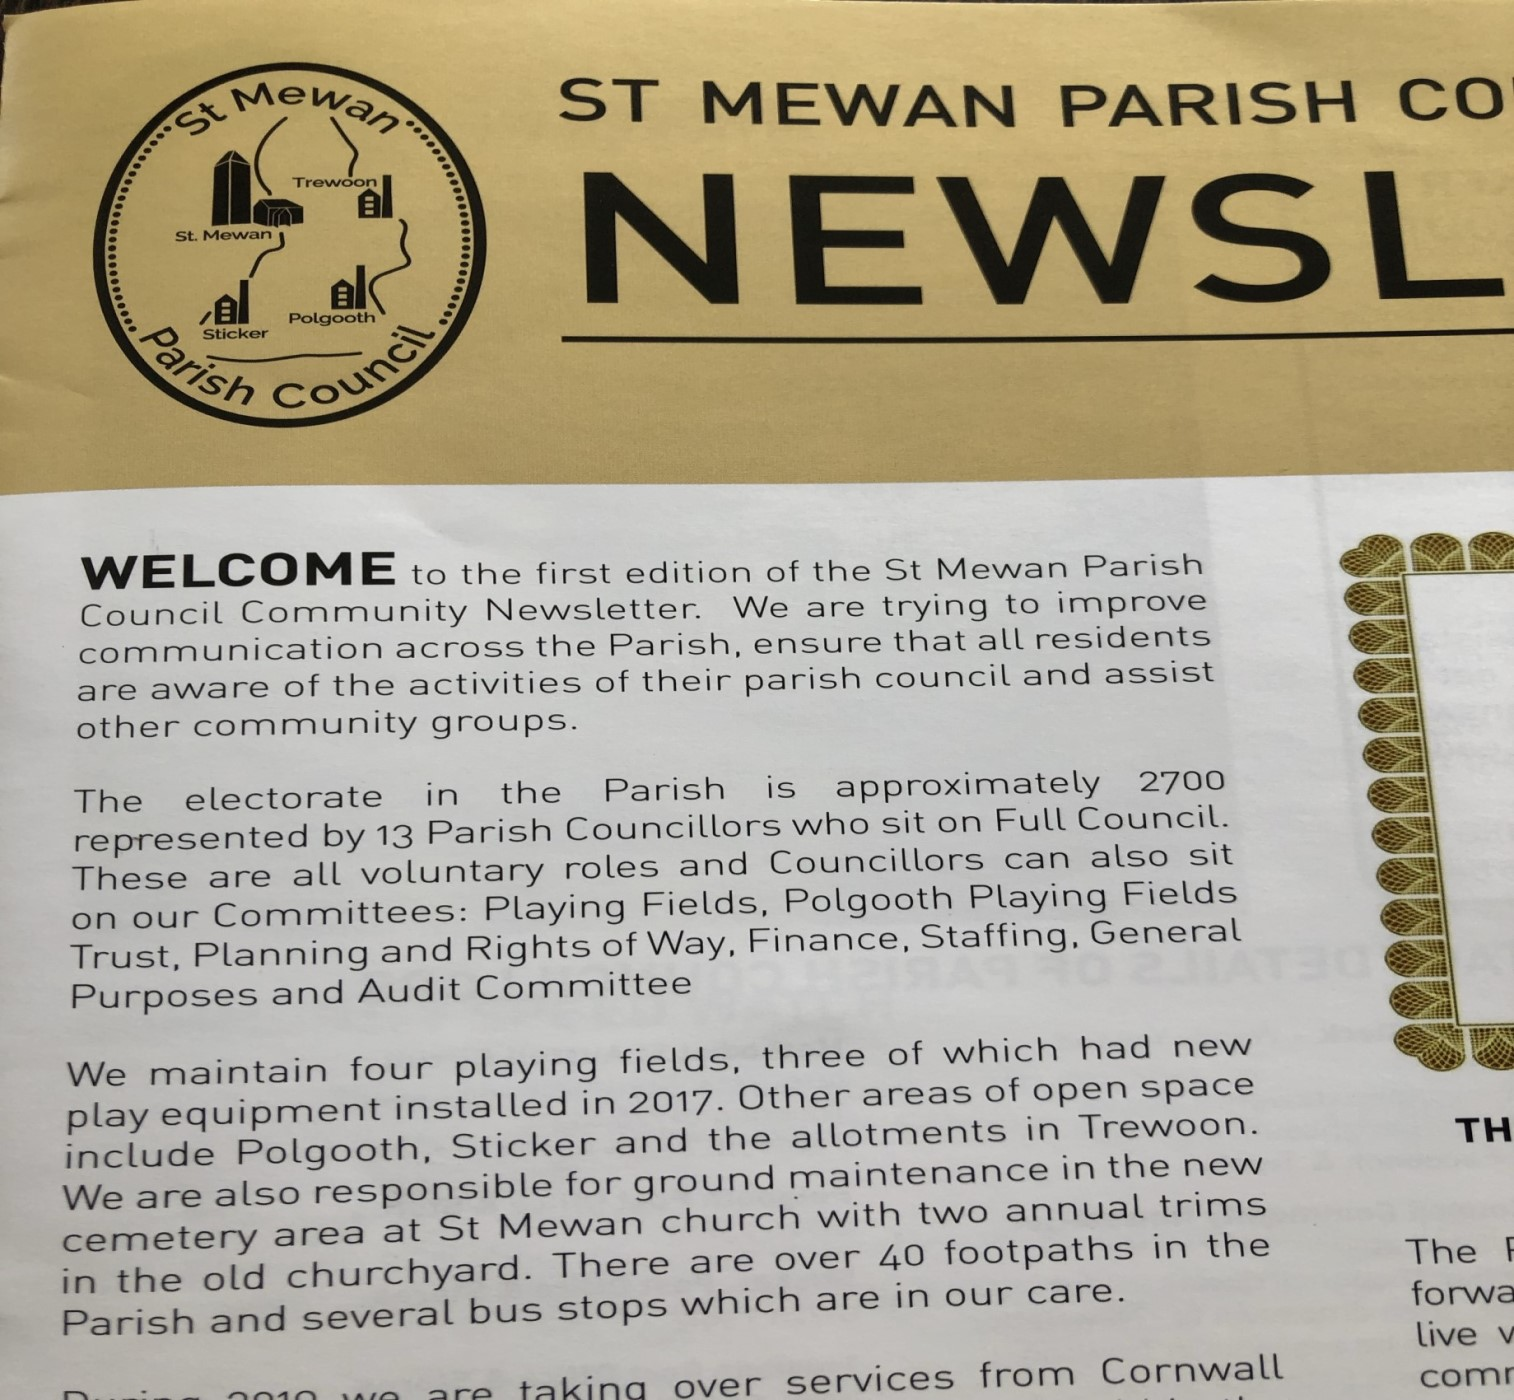 St Mewan Parish Community Newsletter